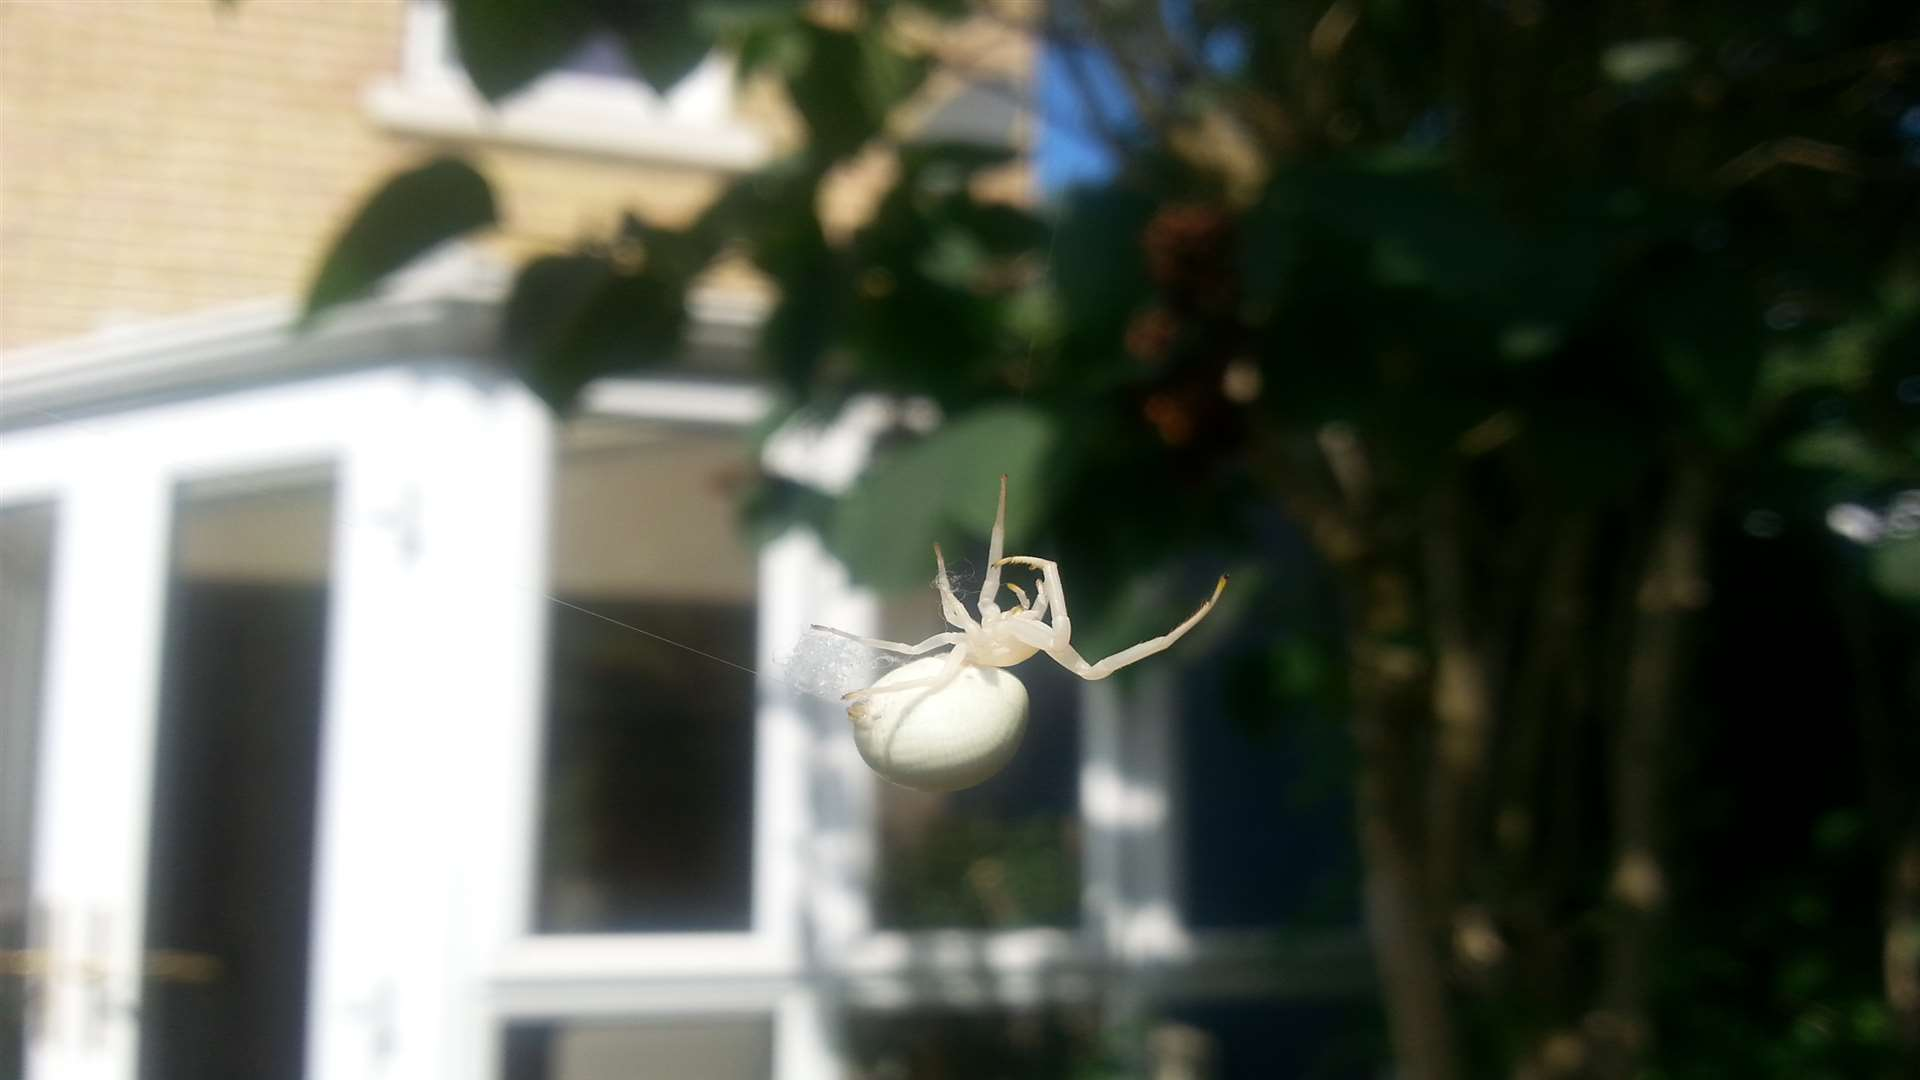 An albino spider spotted in Barming, Maidstone